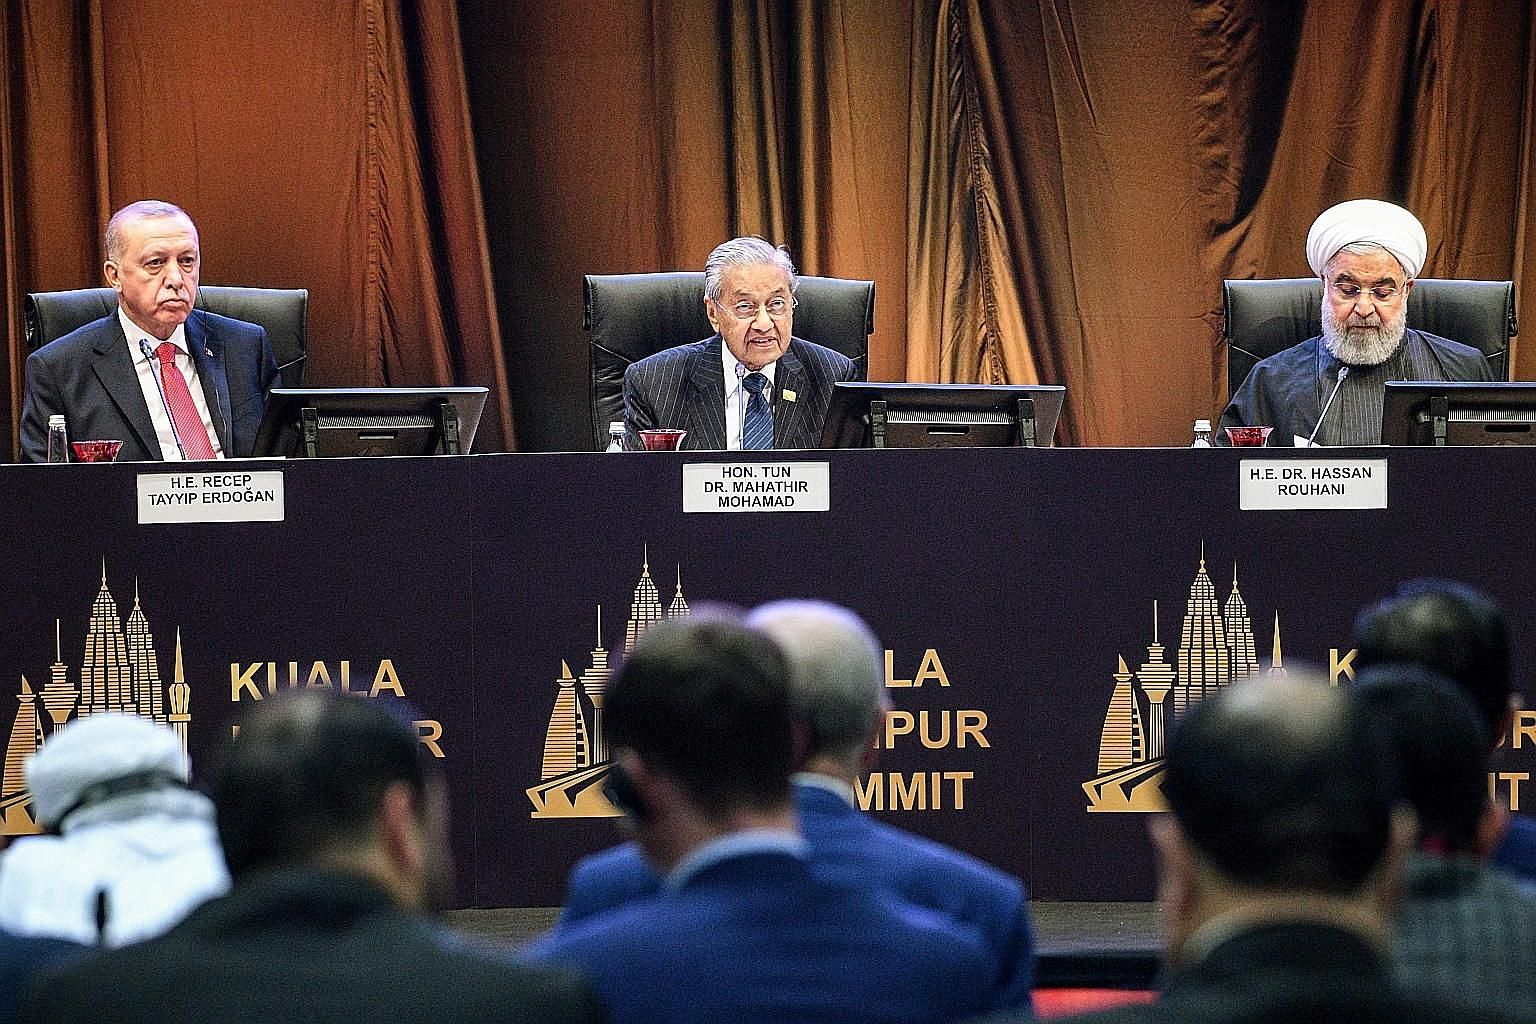 From left: Turkish President Recep Tayyip Erdogan, Malaysian Prime Minister Mahathir Mohamad and Iranian President Hassan Rouhani at the first round-table session of the Kuala Lumpur Summit yesterday.